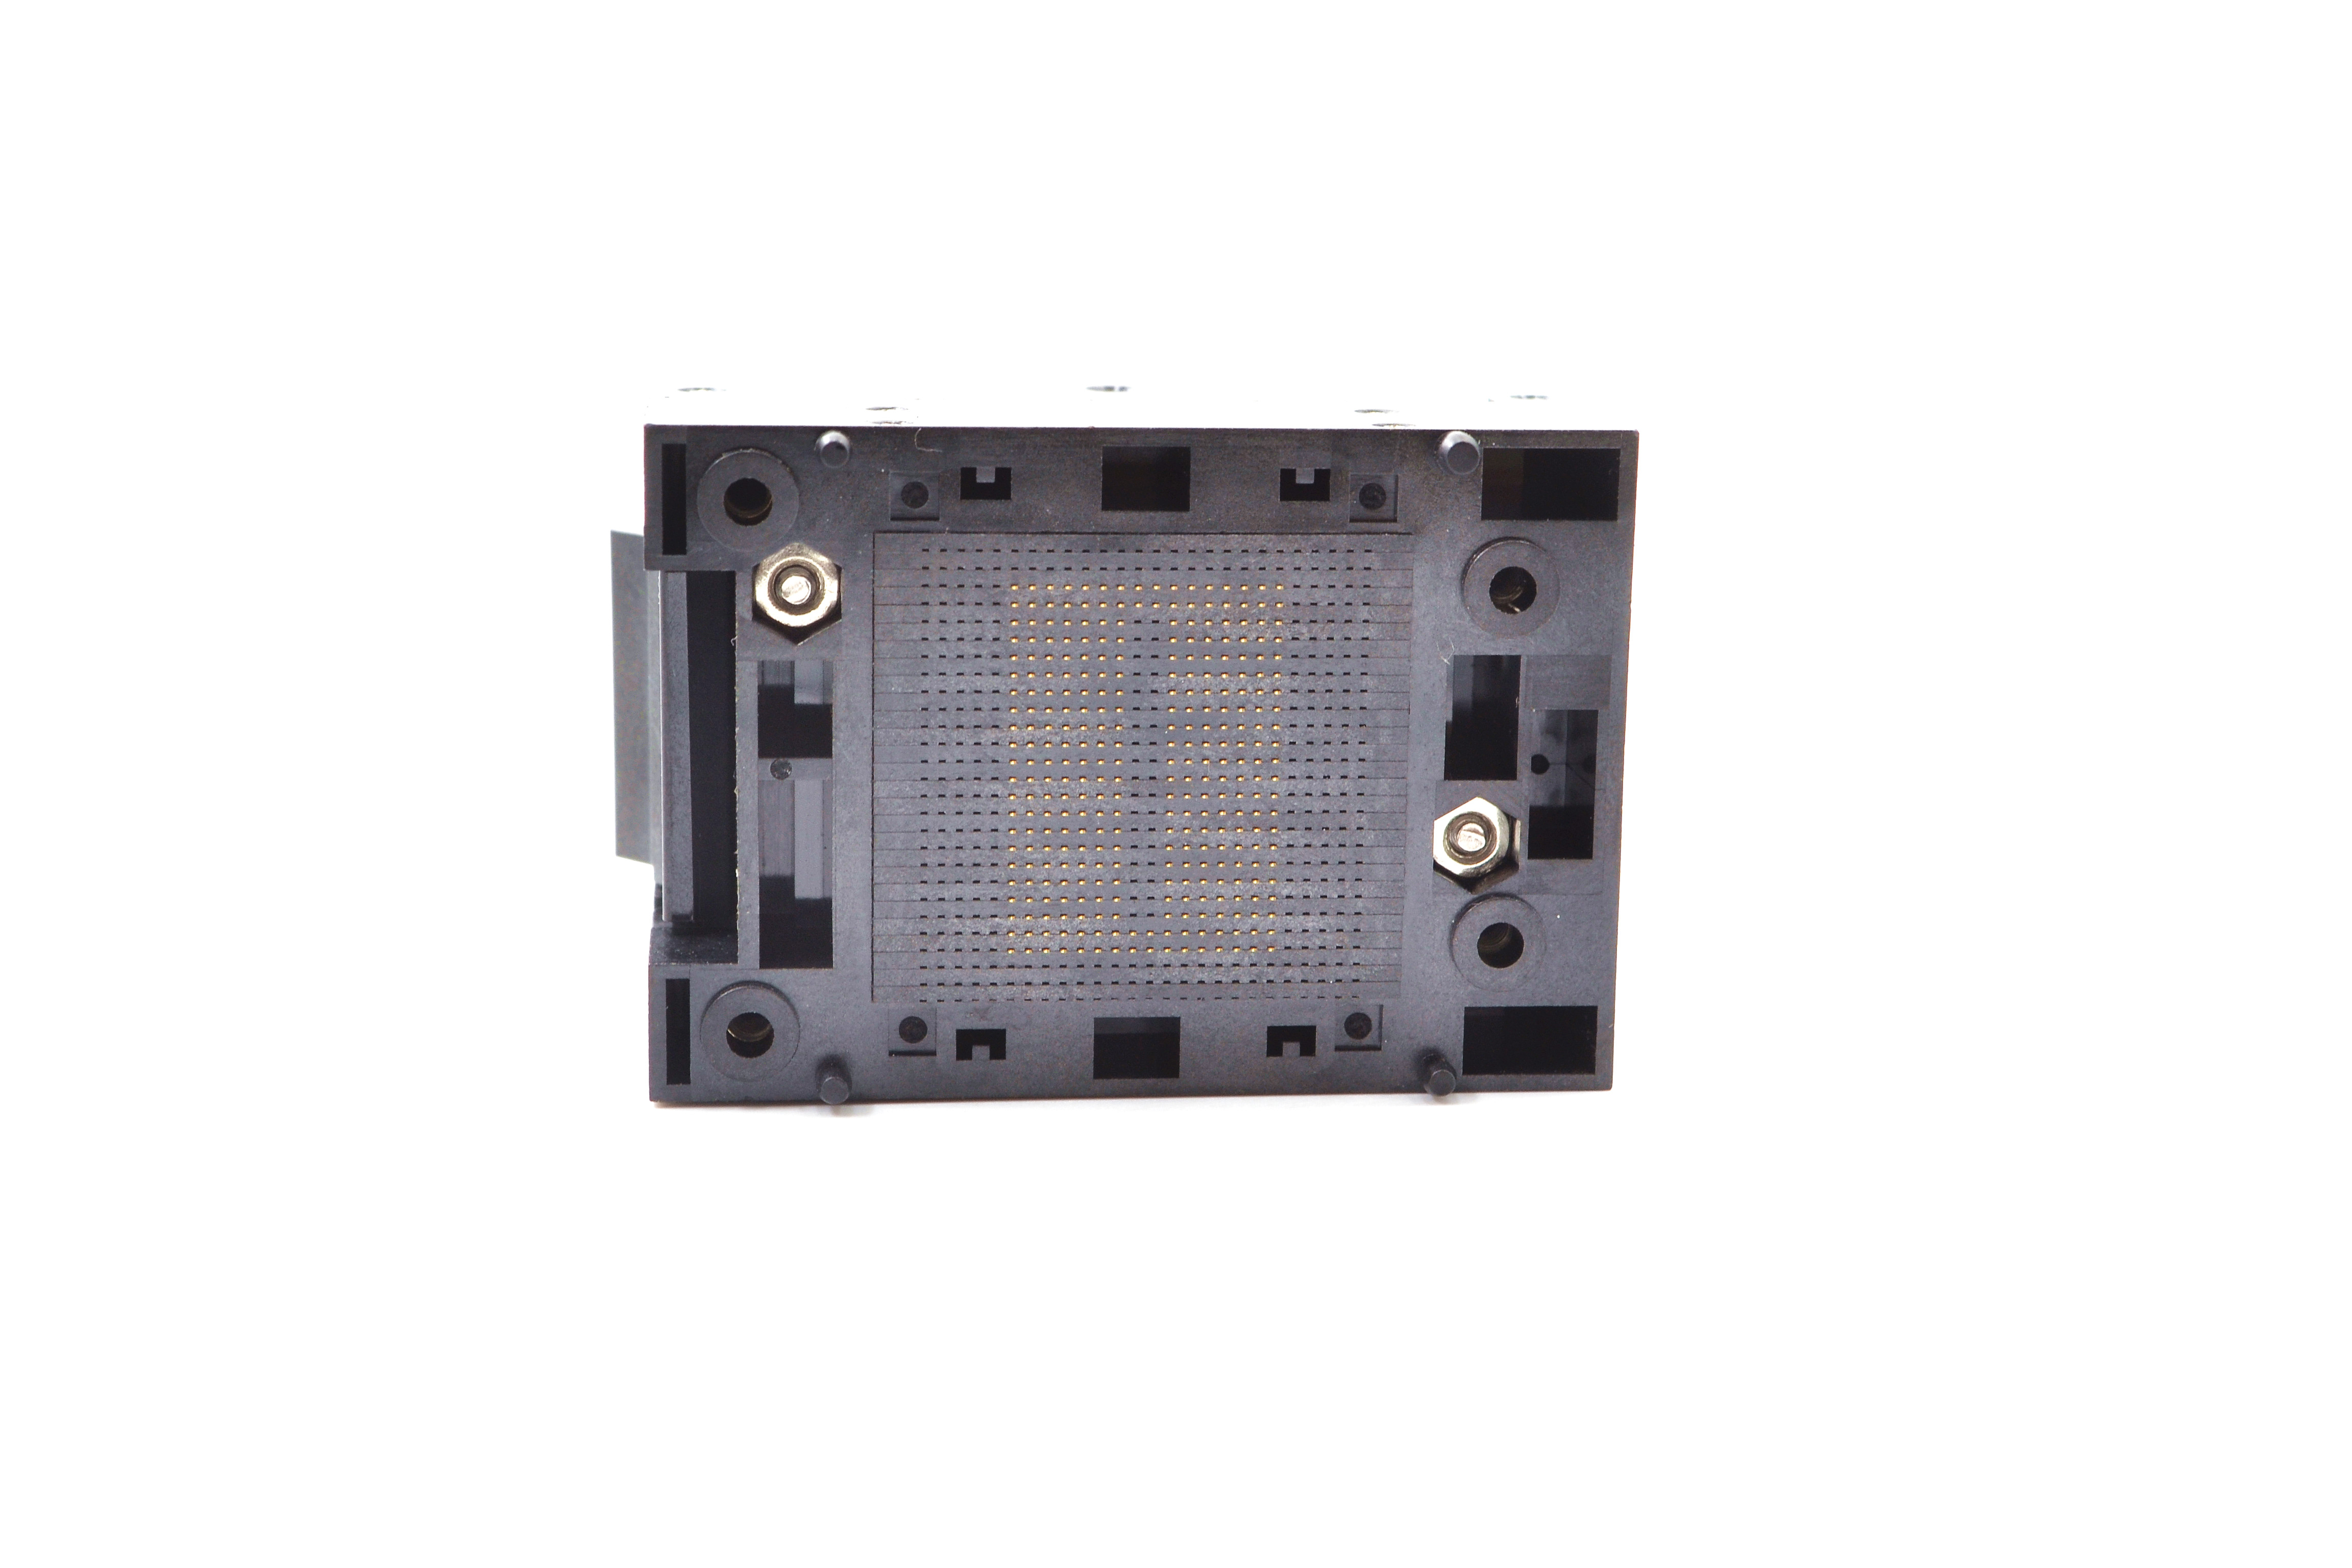 BGA75- Socket SCN-500M-BGA75 0.4 Socket High quality IC Test & burn-in socket for BGA75/ package 760007EL2C221LTDBLECTRO